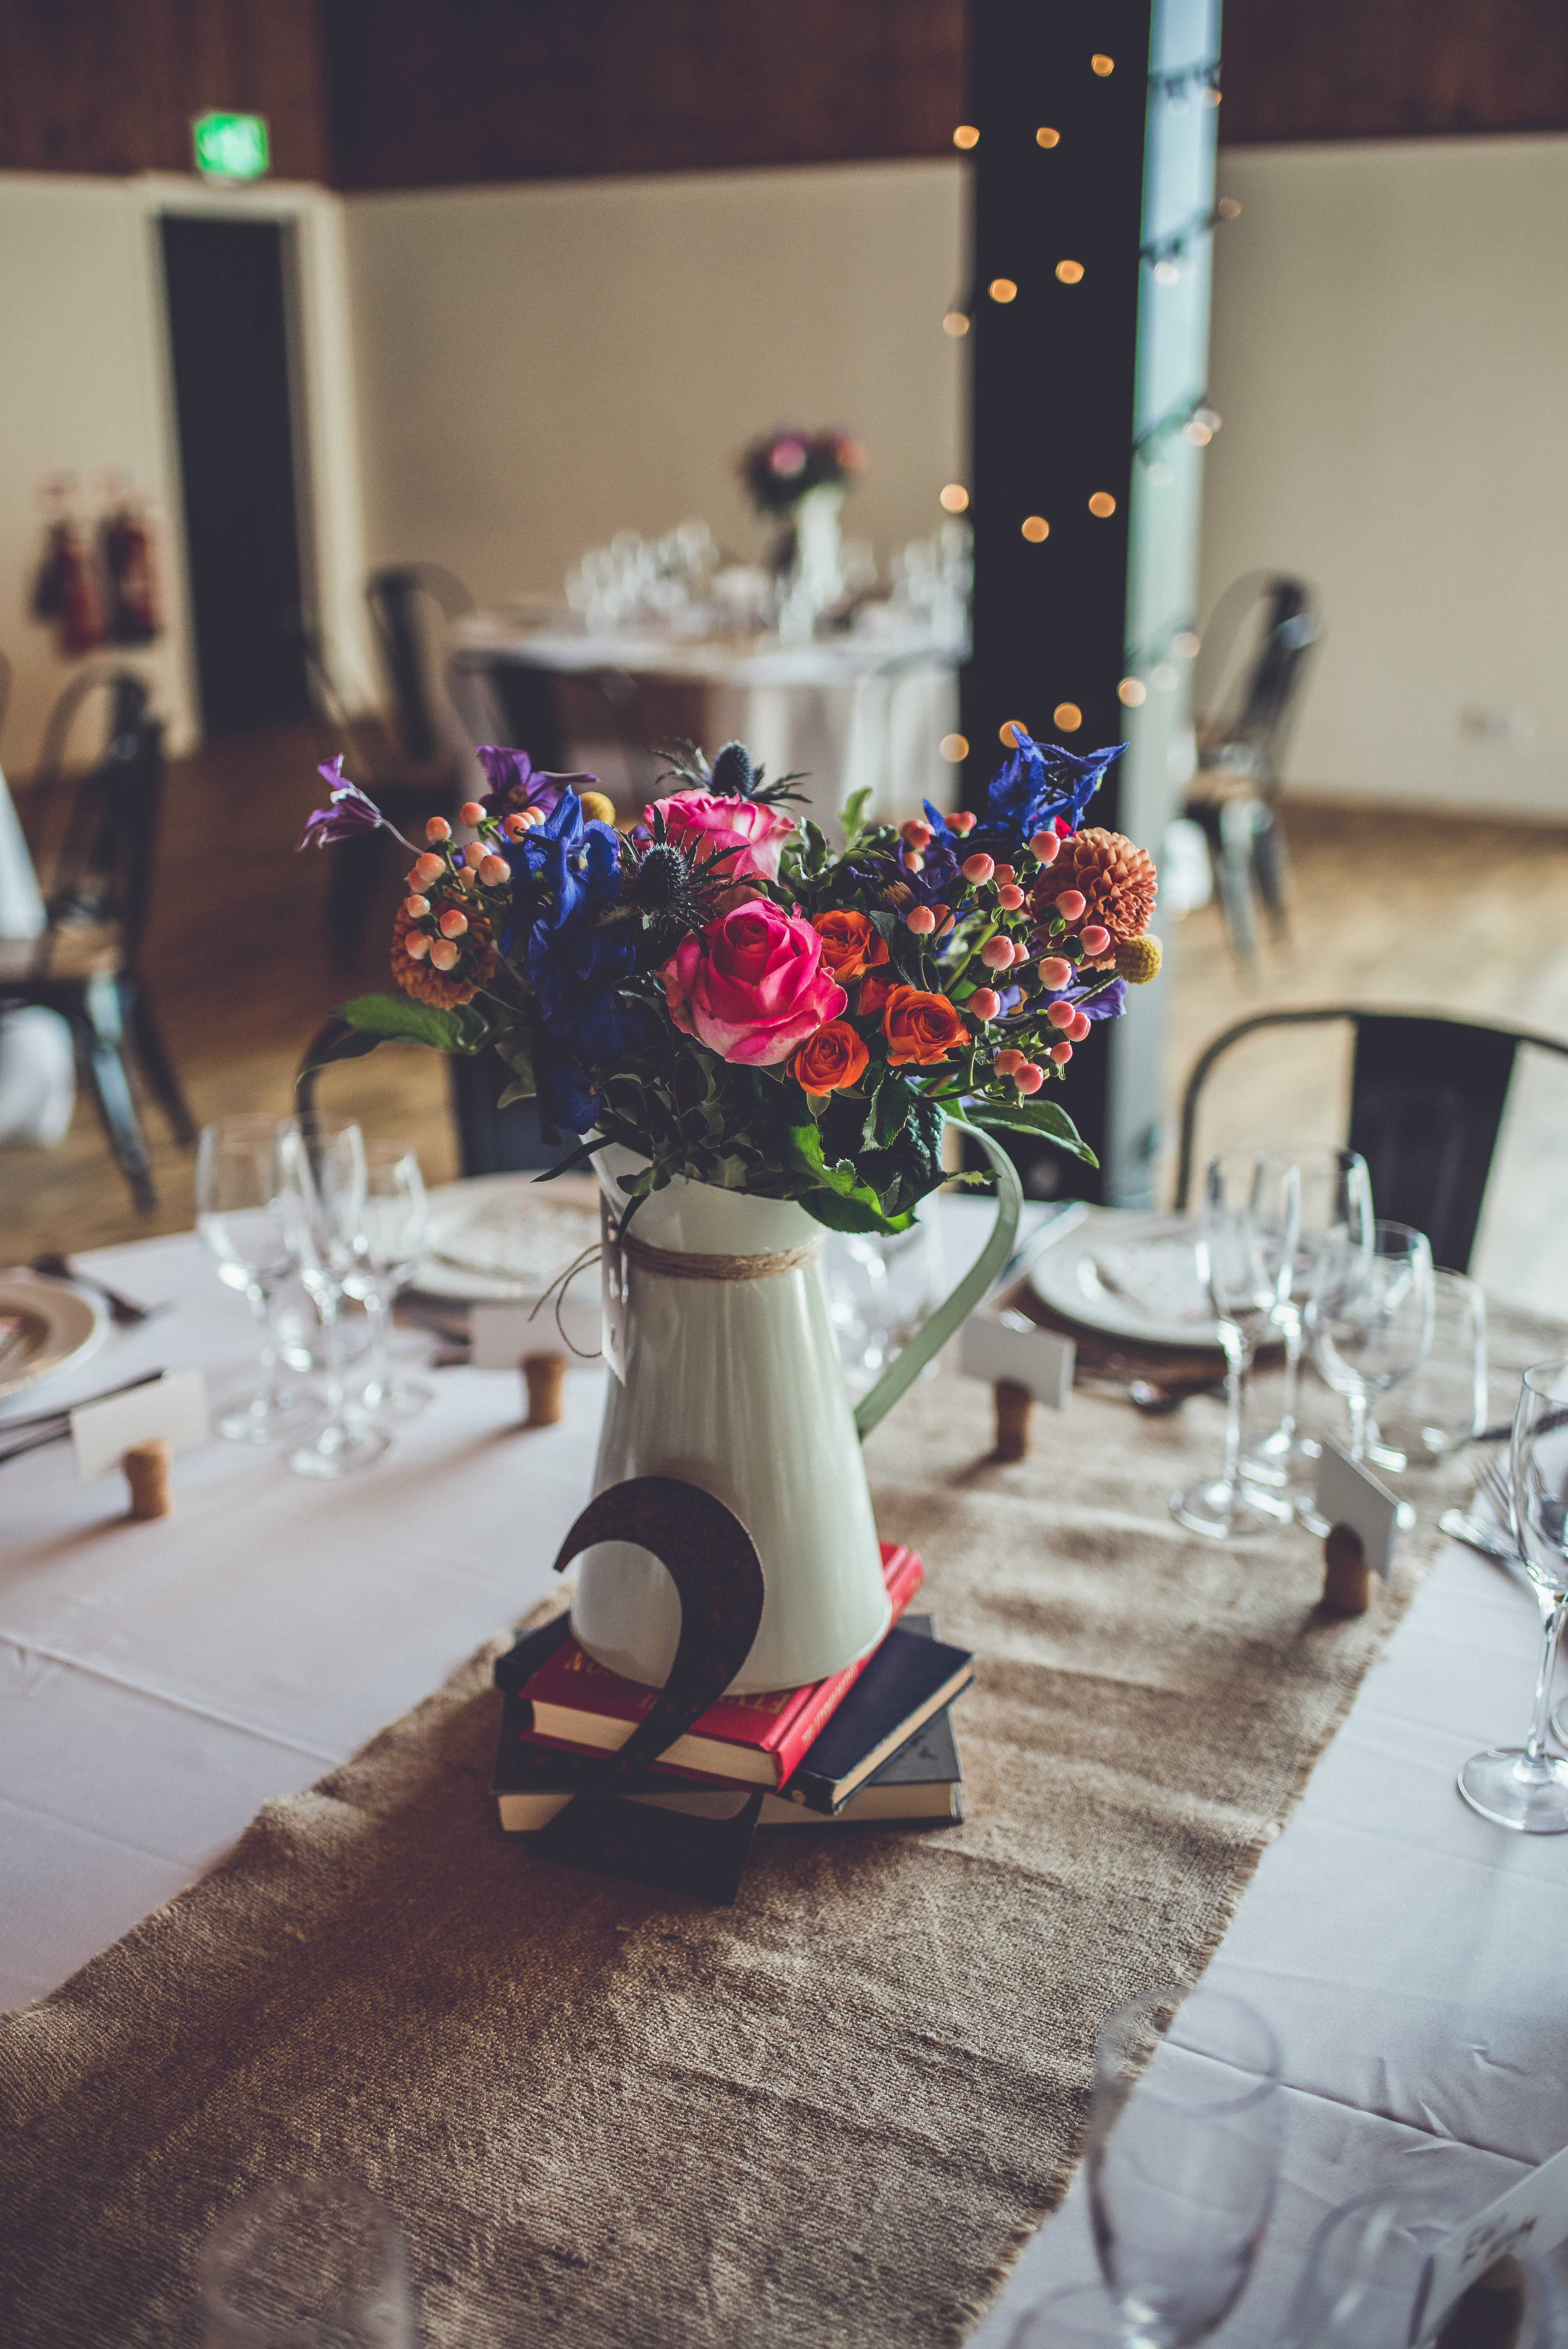 Rustic floral center piece in a jug